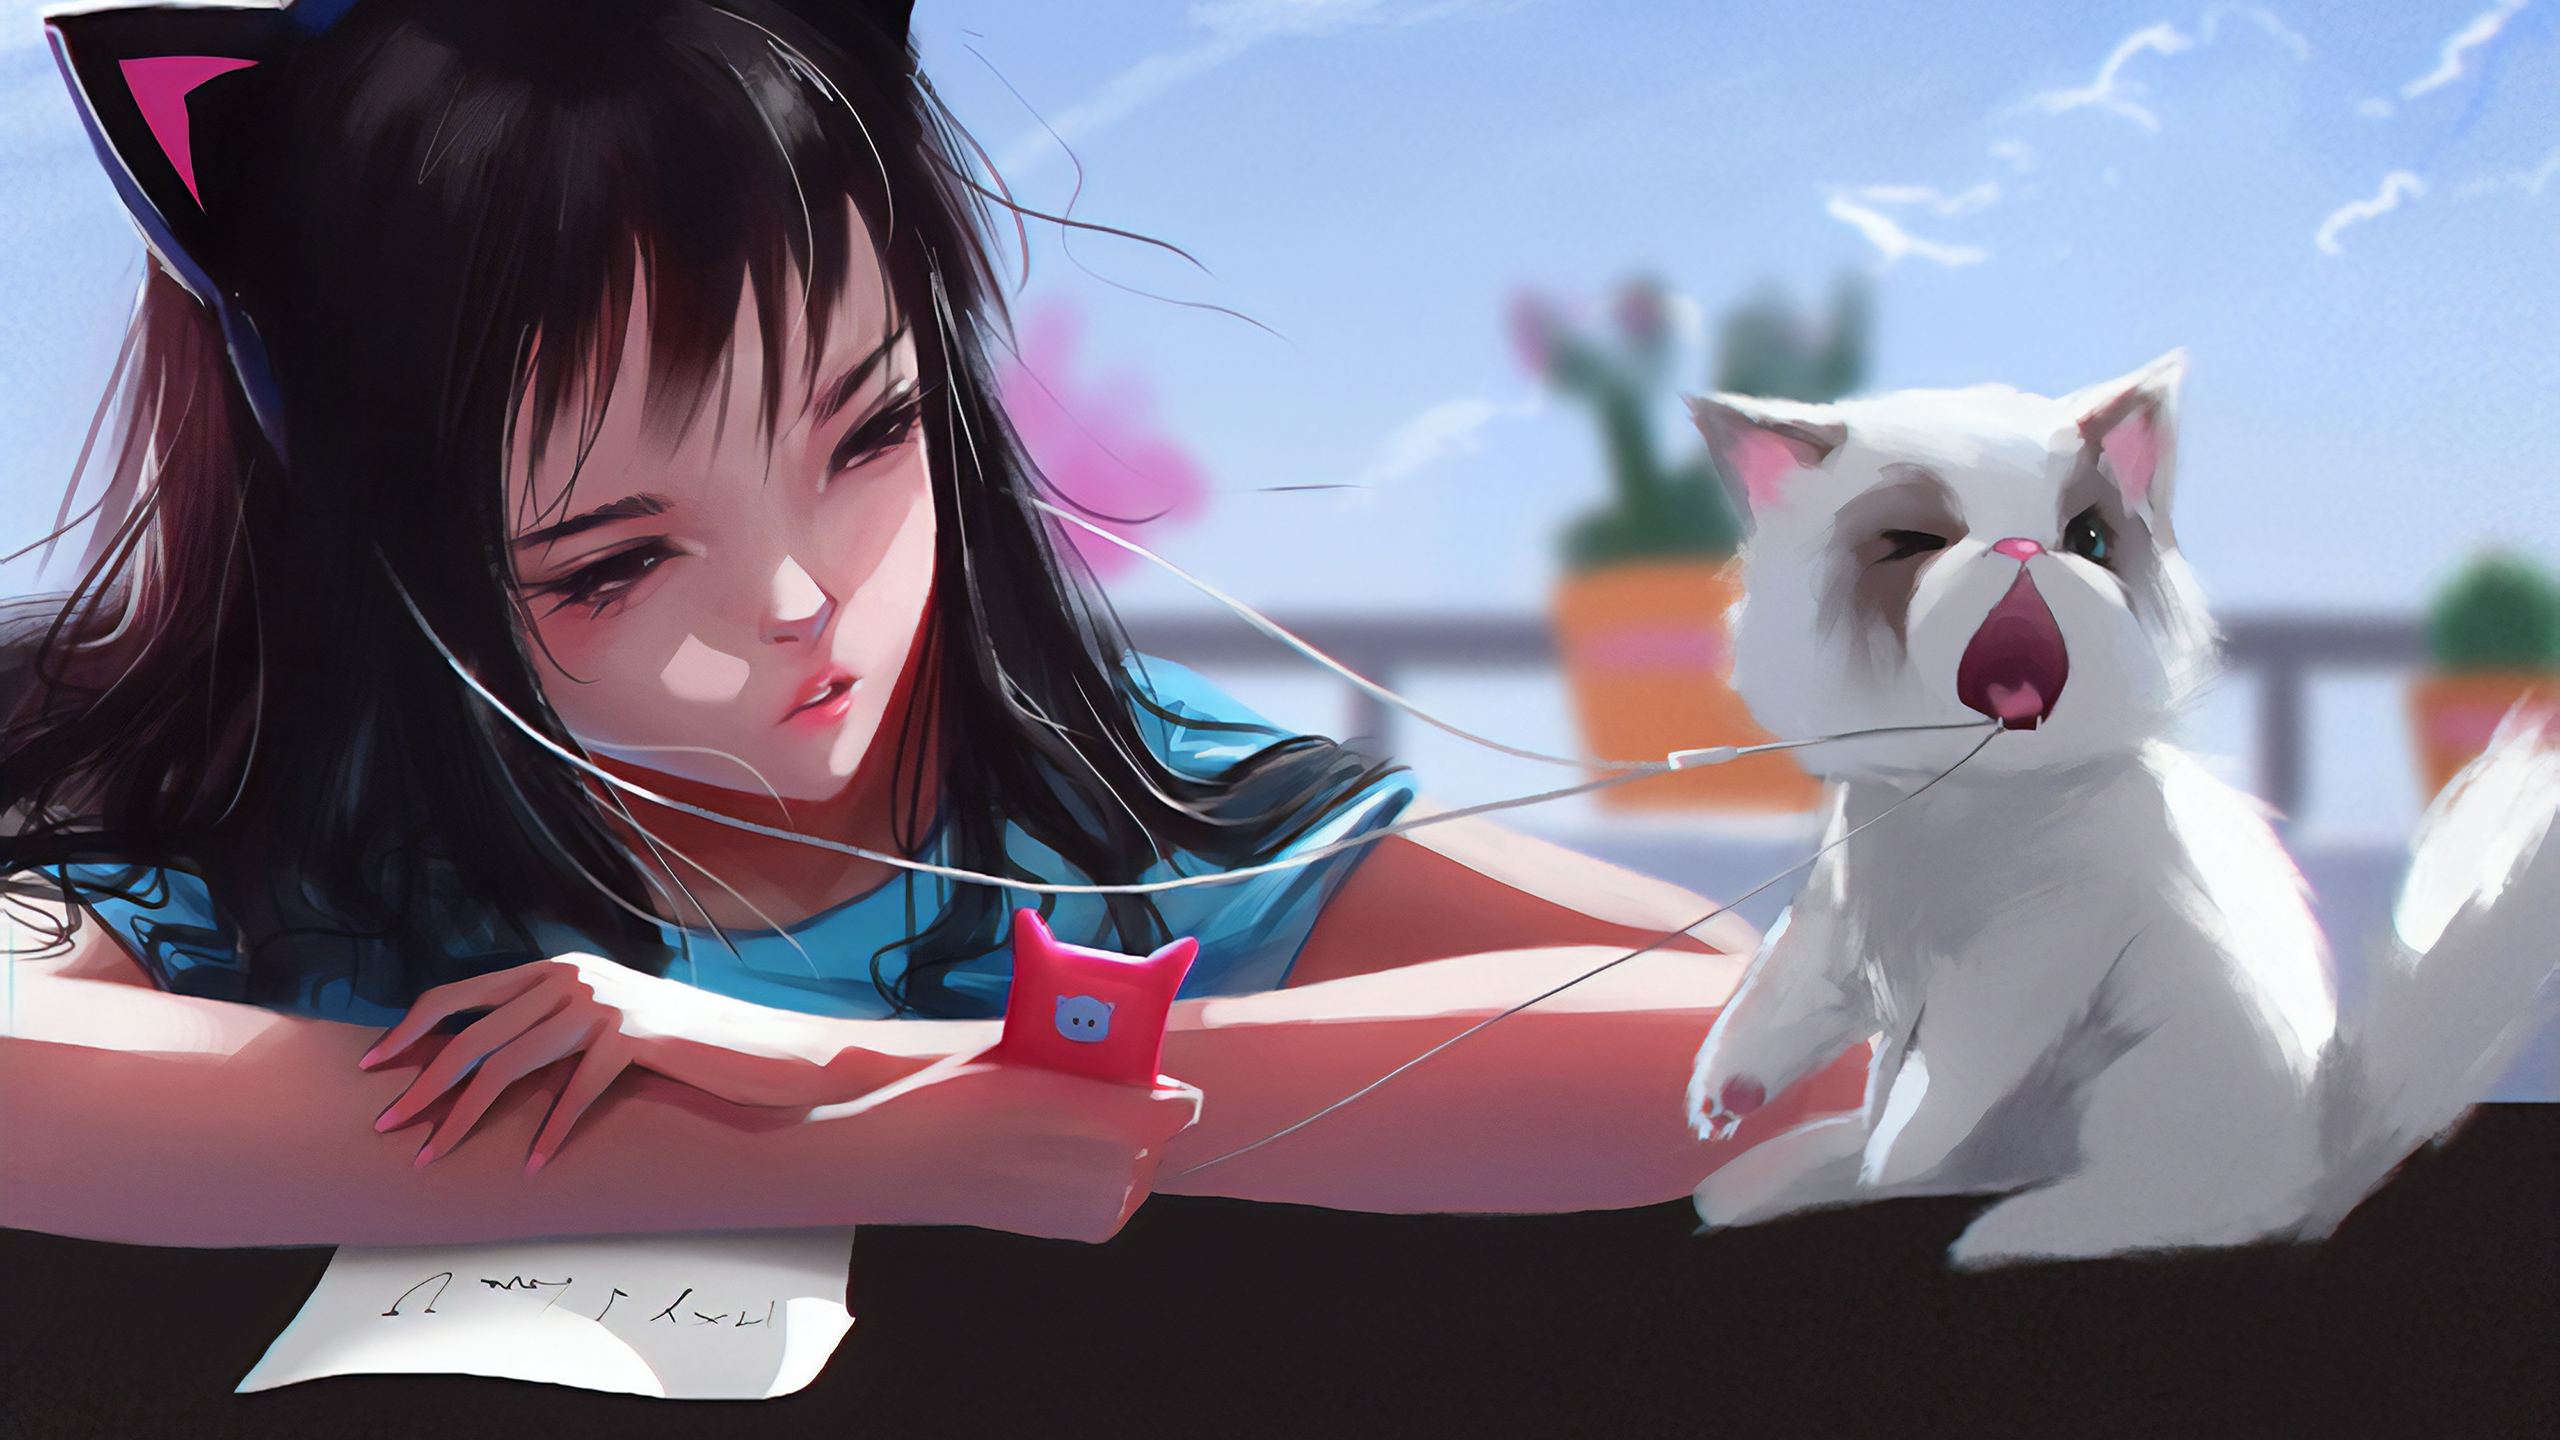 Anime Girl With Cat Pulling Back Her Headphones Hd Anime 4k Wallpapers Images Backgrounds Photos And Pictures